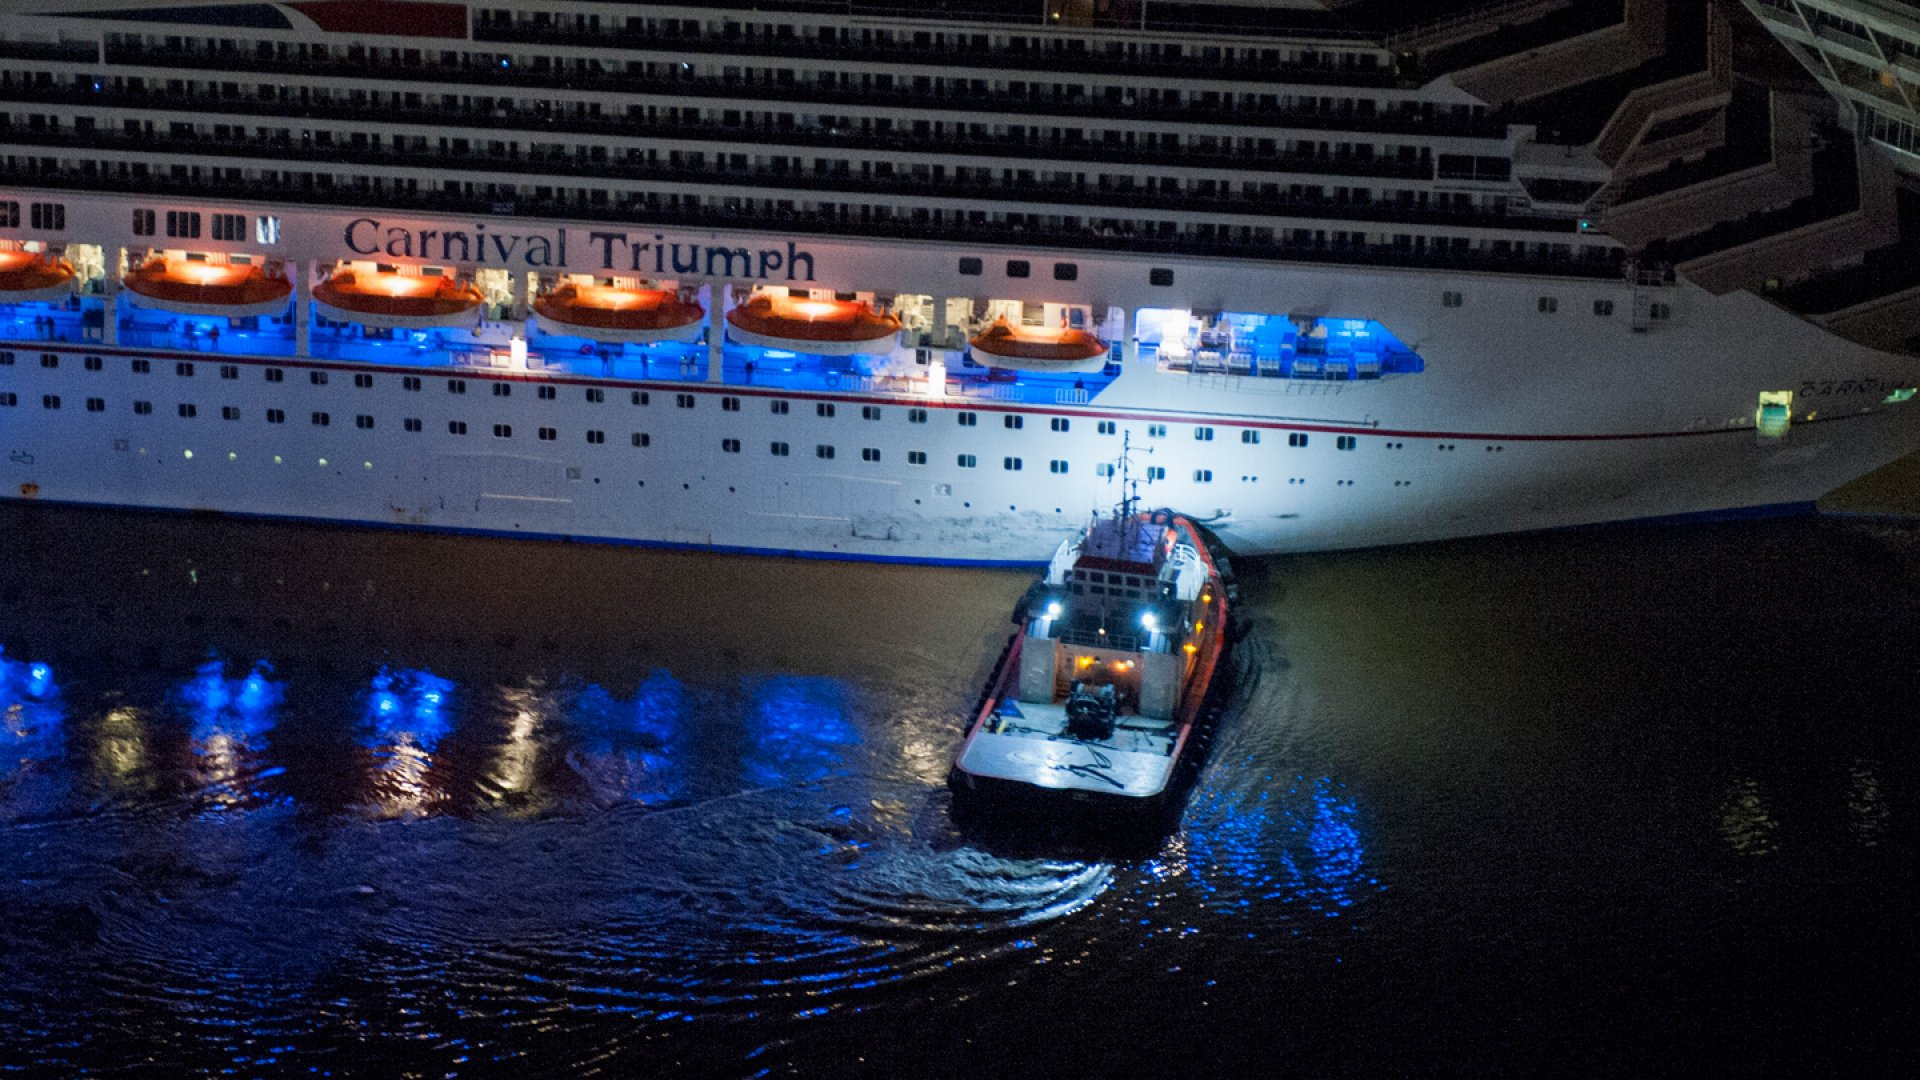 The crippled cruise liner Carnival Triumph limps into port guided by tug boats February 14, 2013 in Mobile, Alabama.